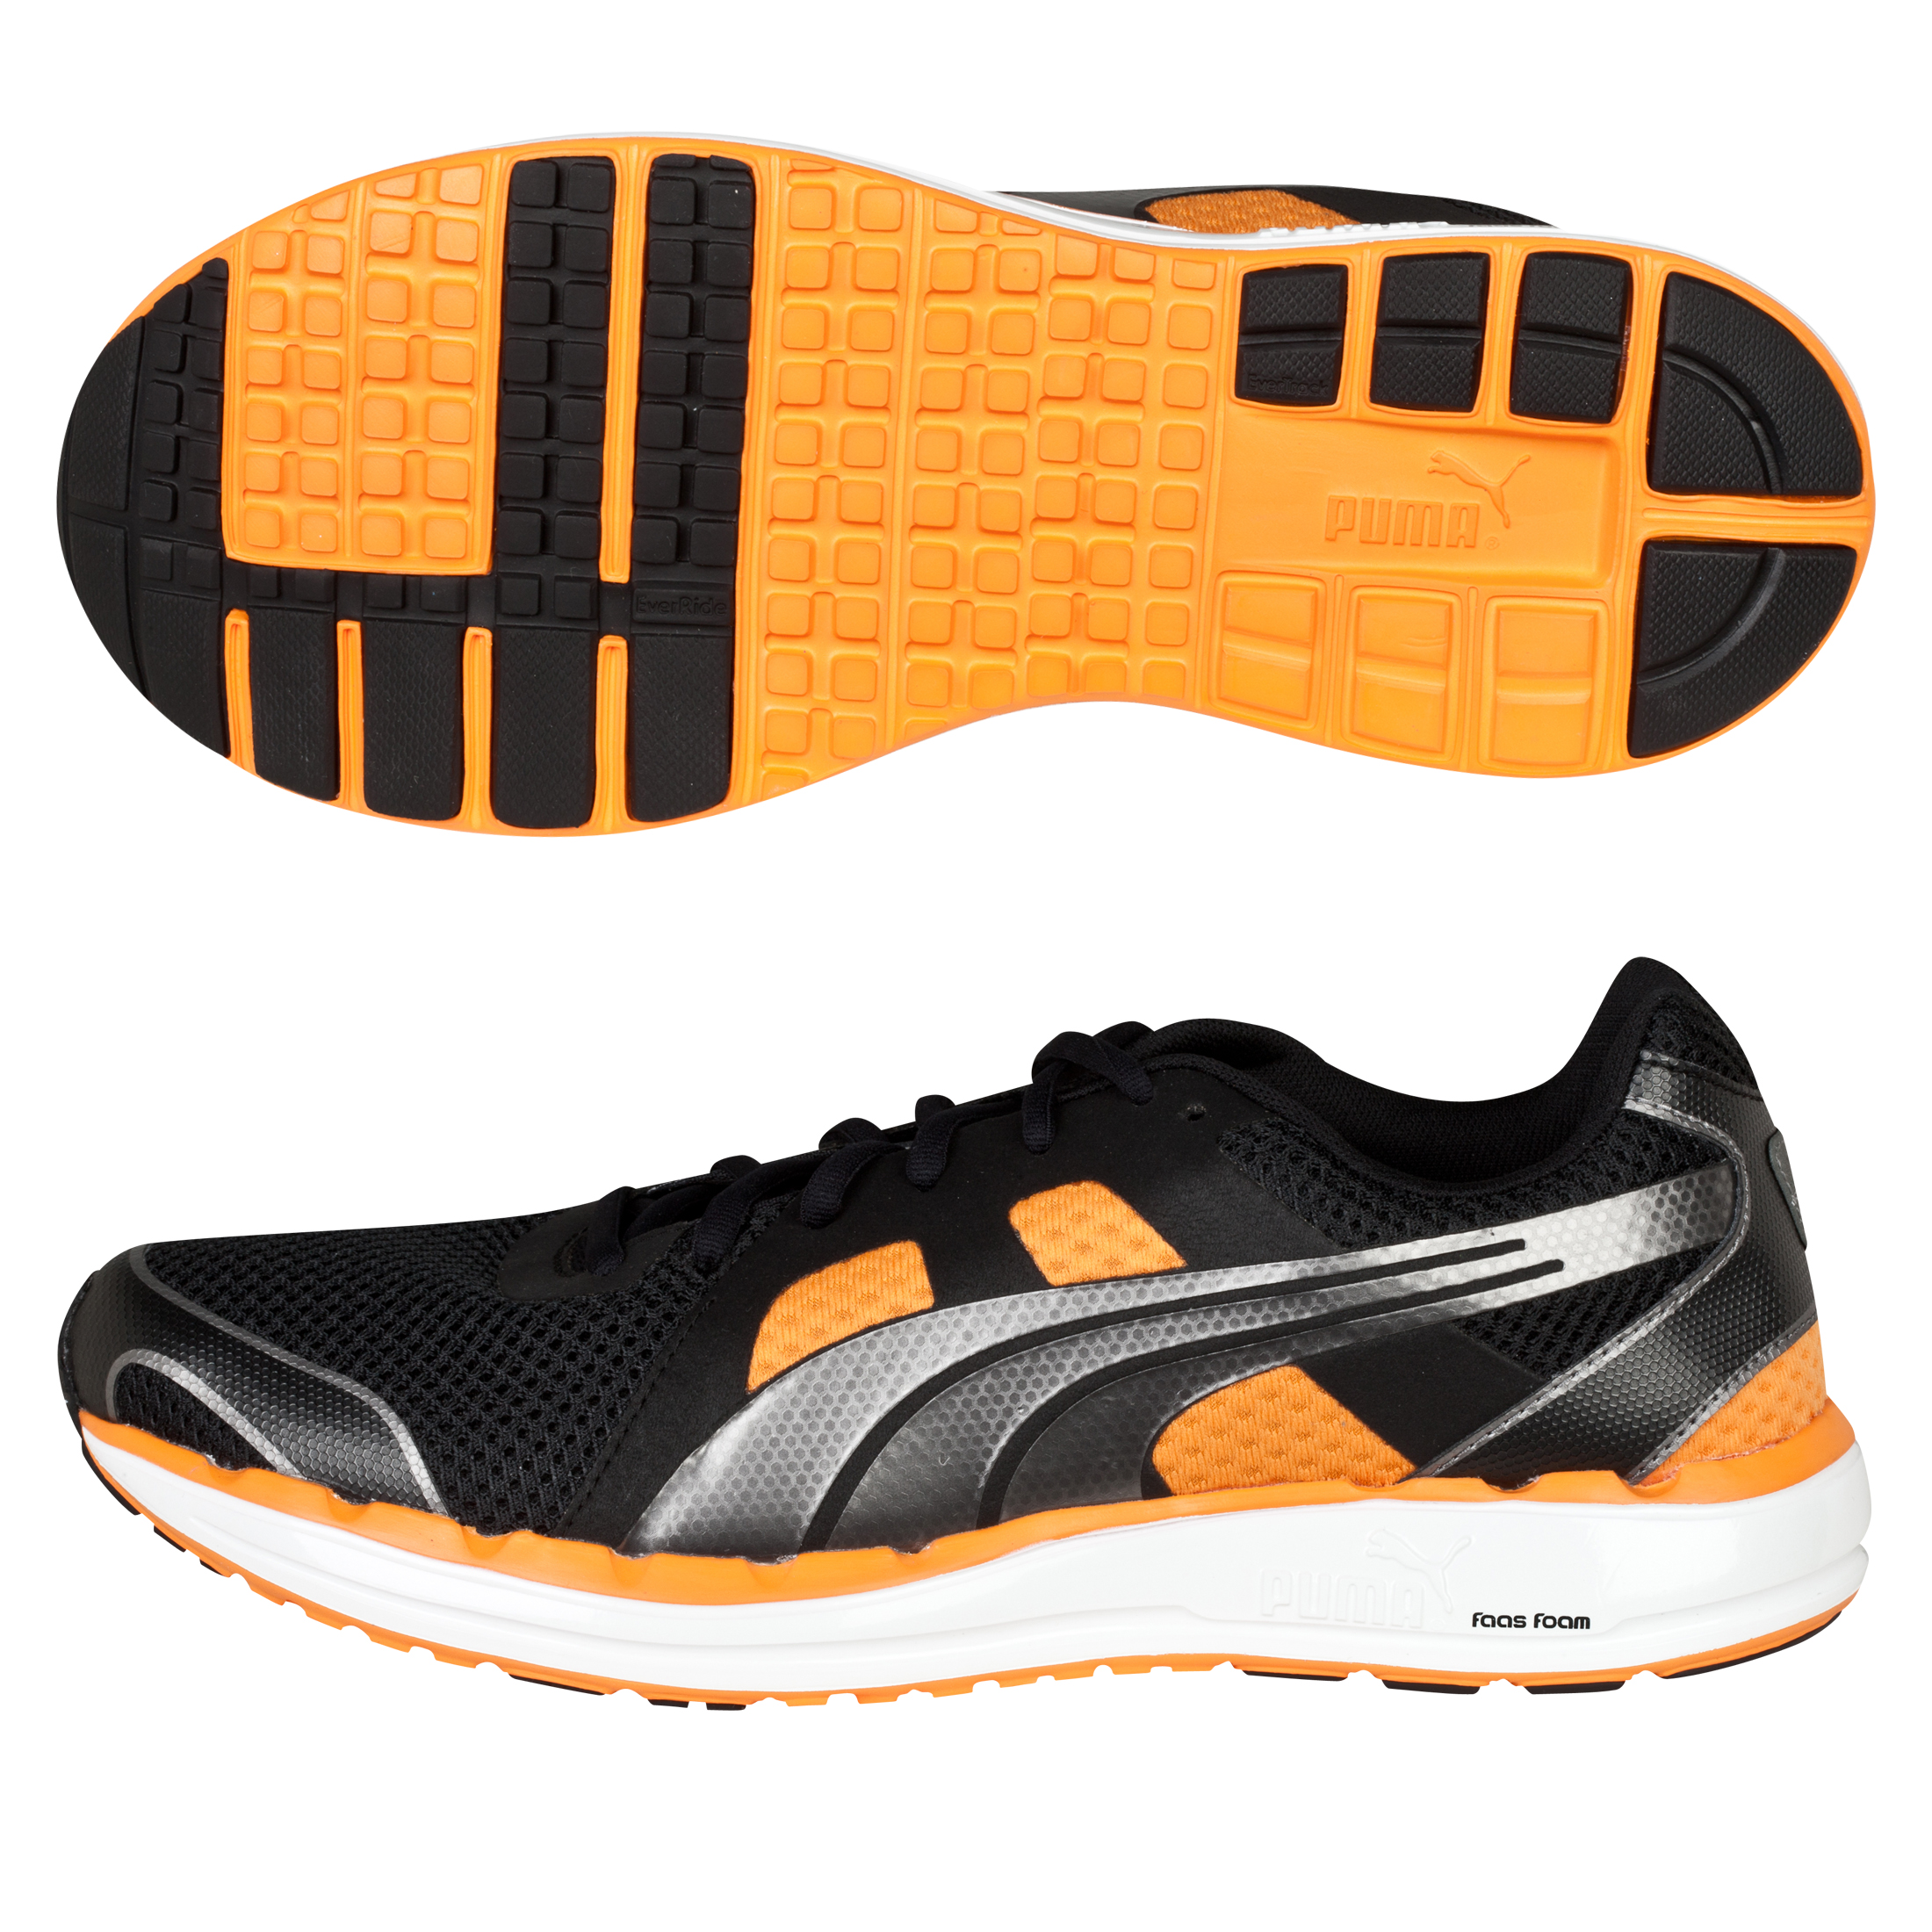 Puma Faas 550 NM Running Trainers - Black/Aged Silver/Flame Orange